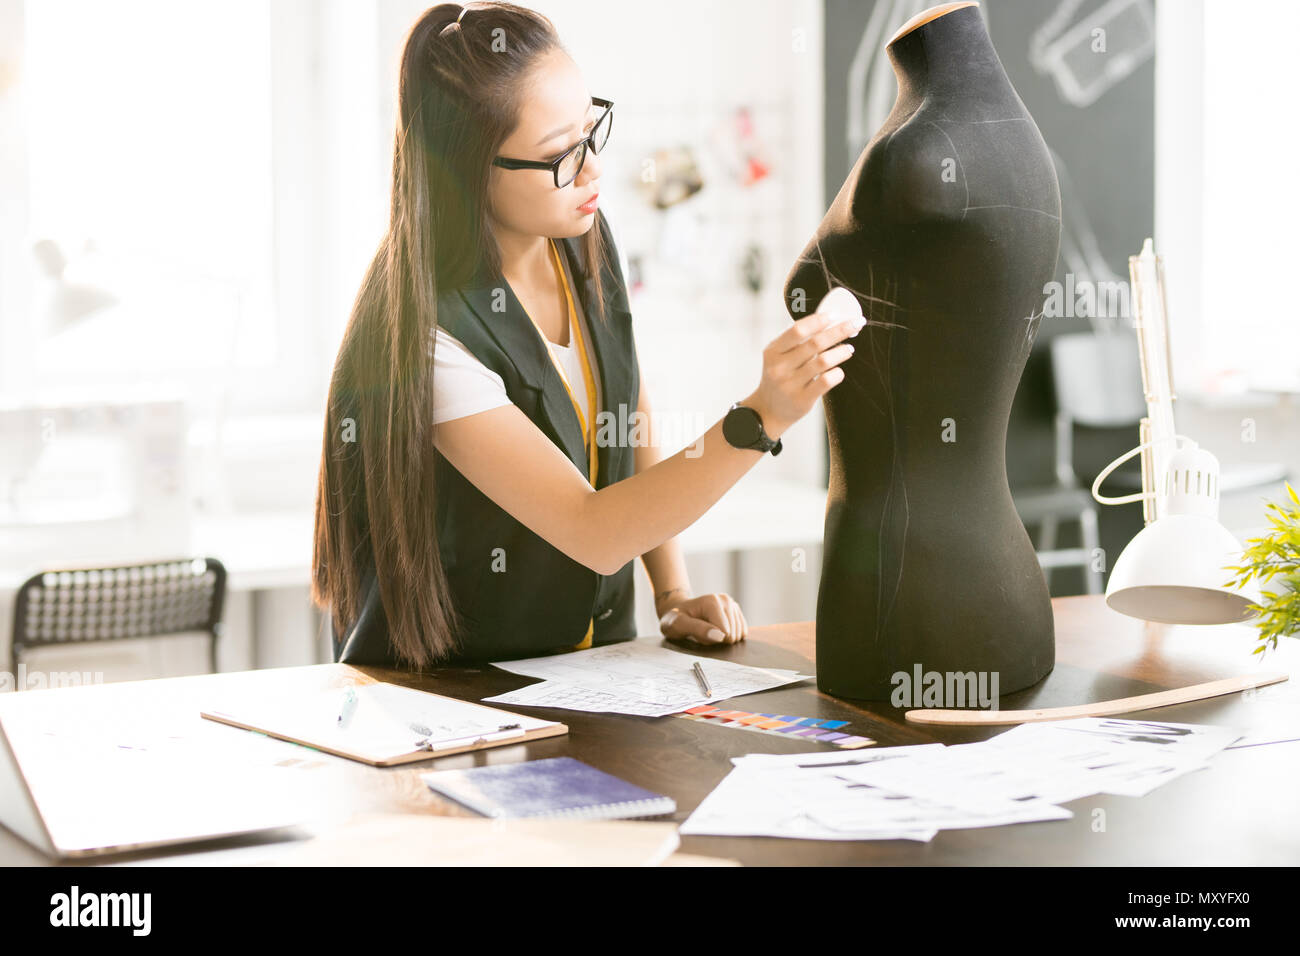 Waist up portrait of focused Asian woman working in fashion design tracing sewing dummy standing at tailors table in sunlit modern atelier studio - Stock Image